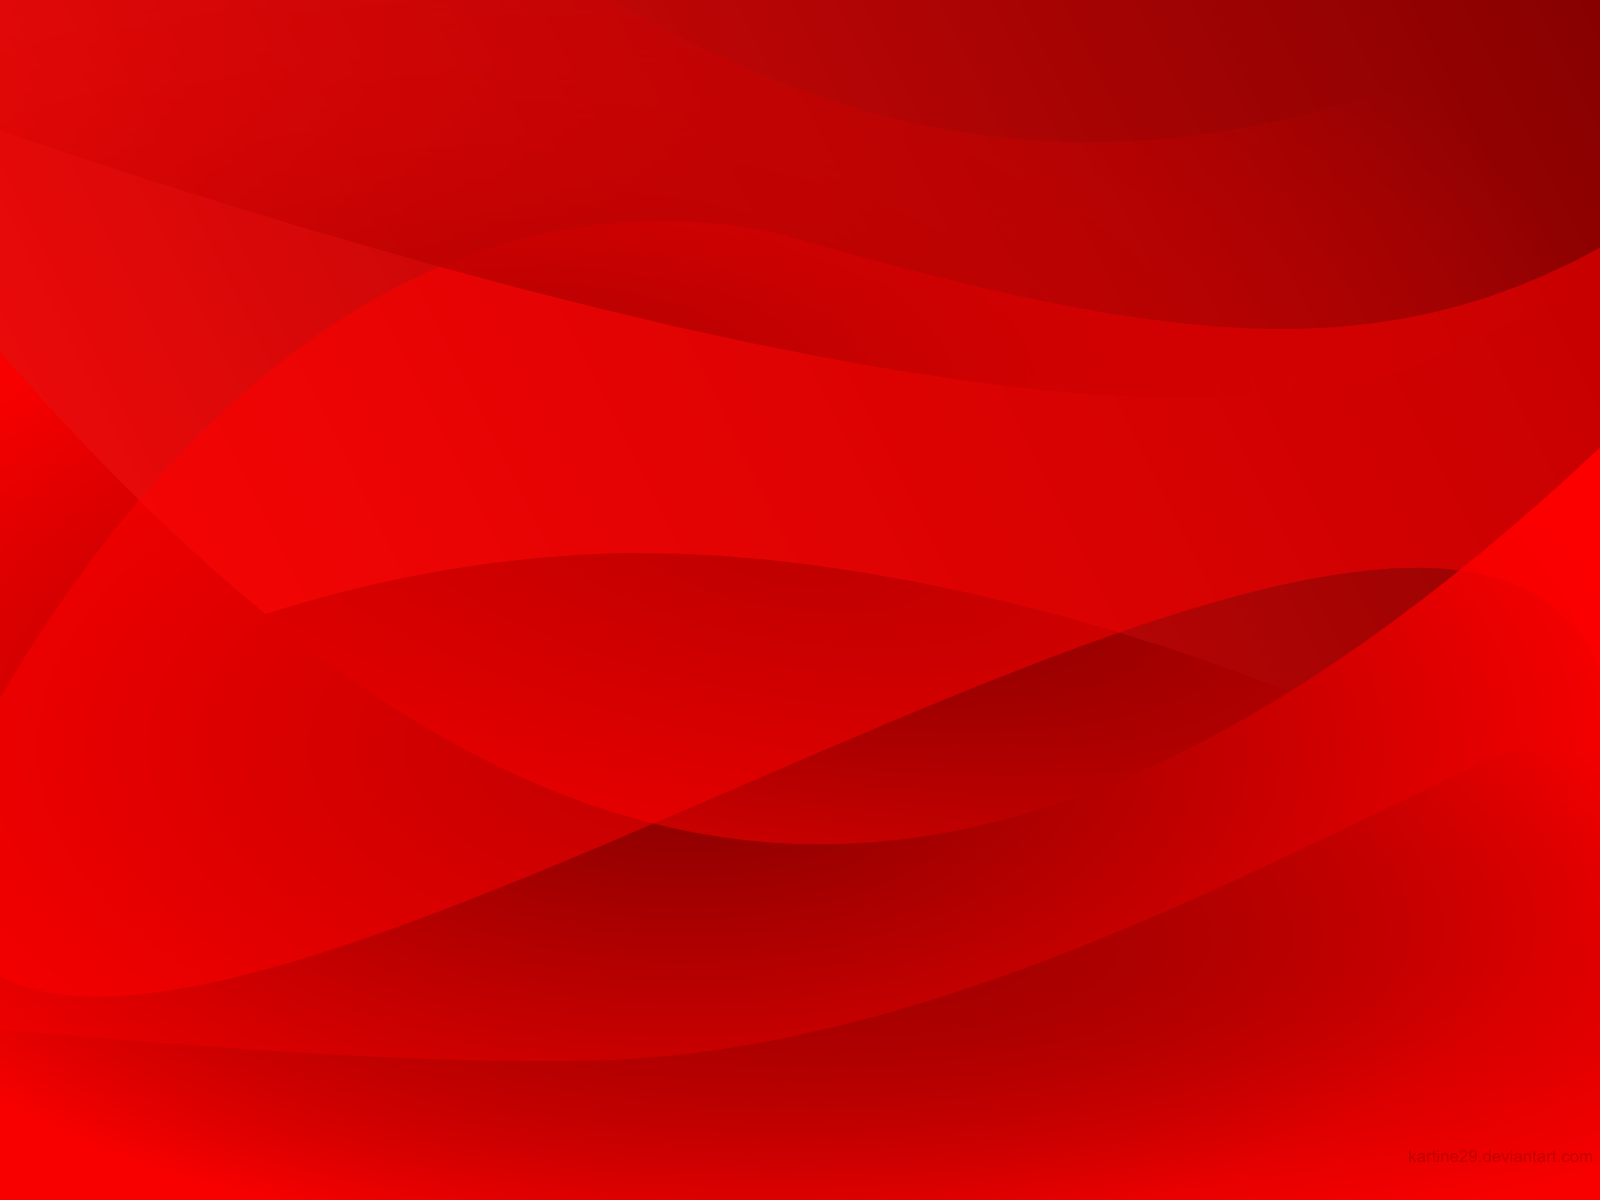 red-abstract-wallpaper-10